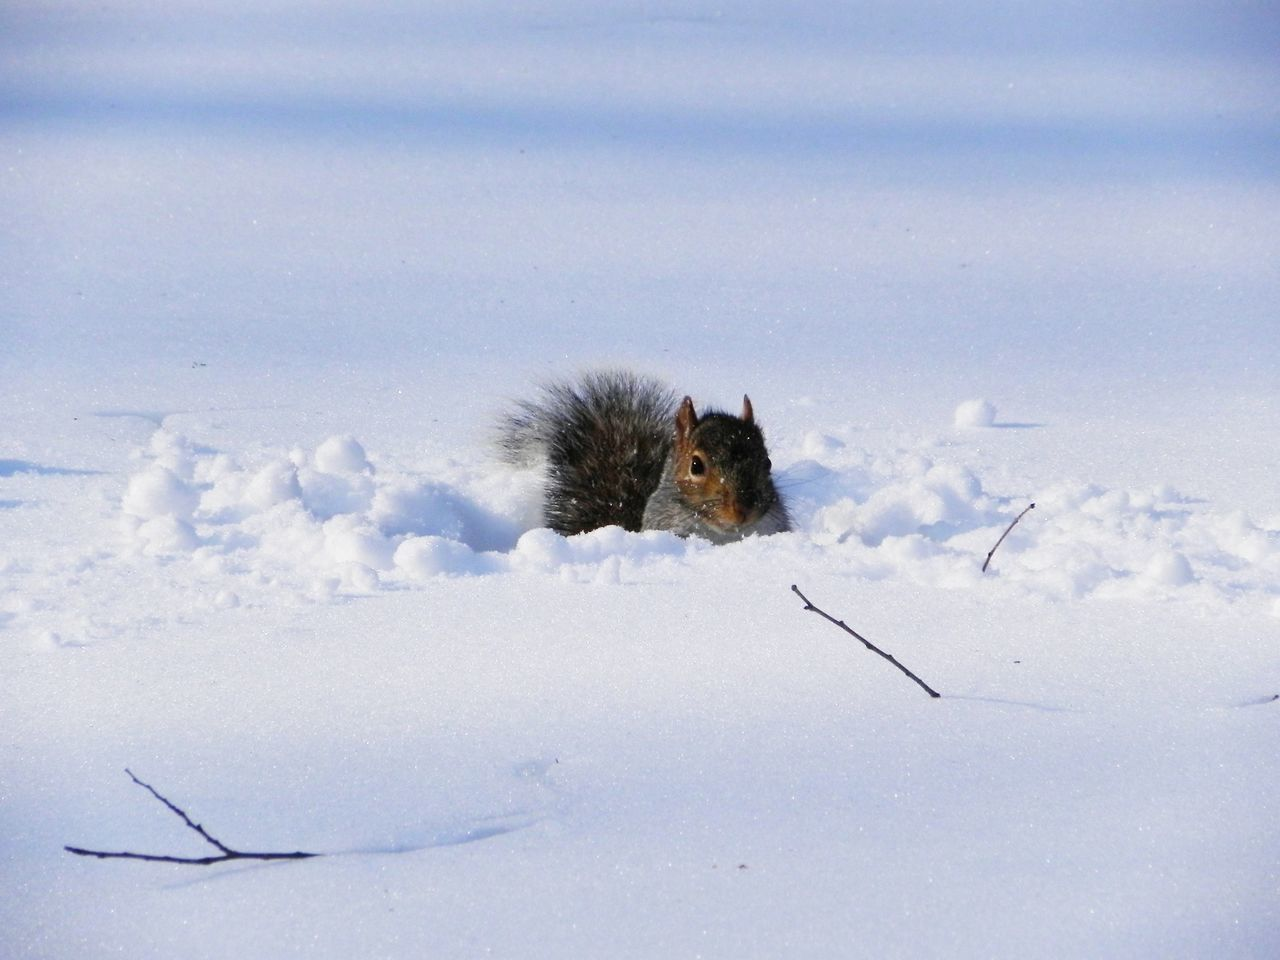 Portrait Of A Squirrel On Snow